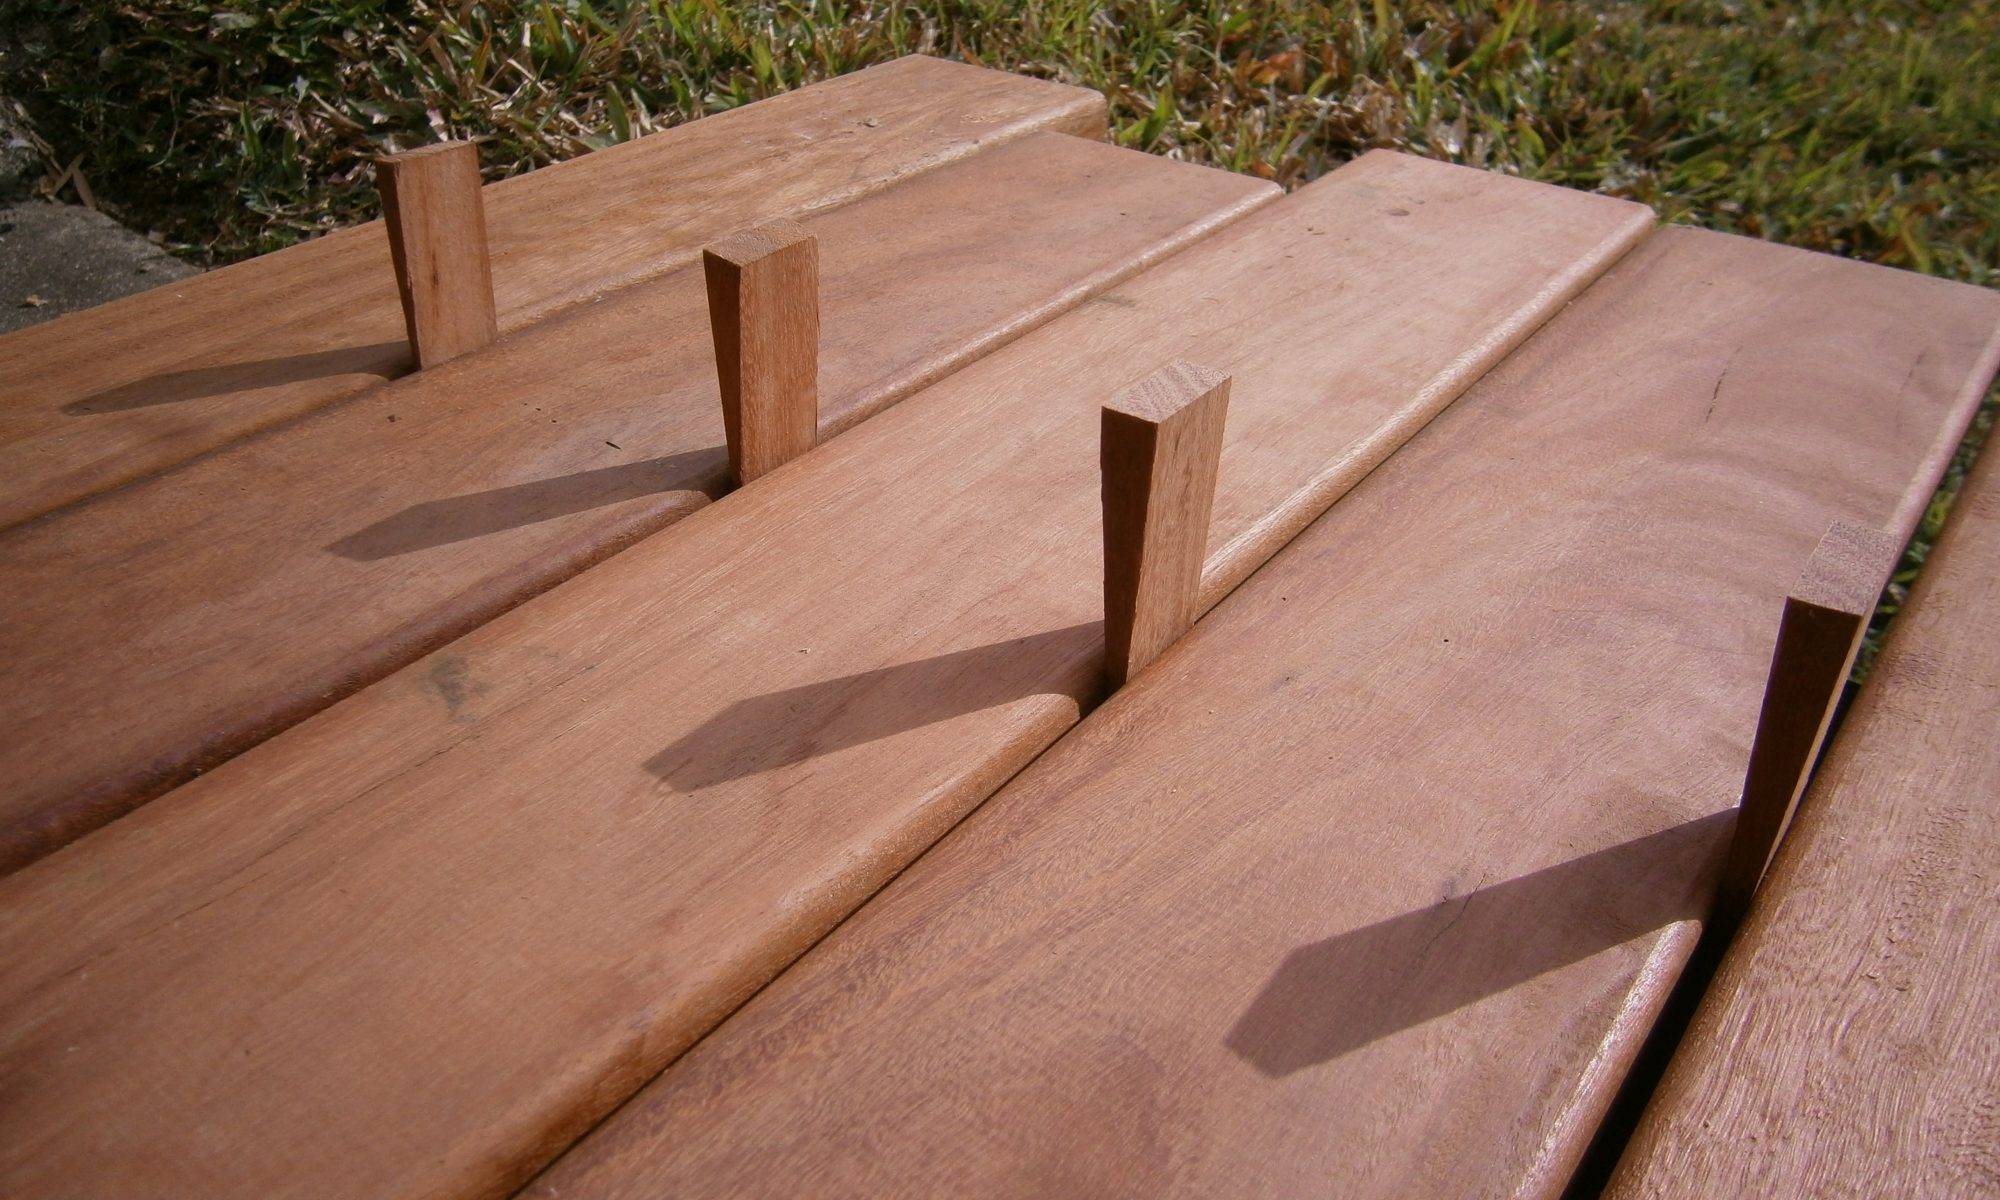 Decking boards, timber wedges